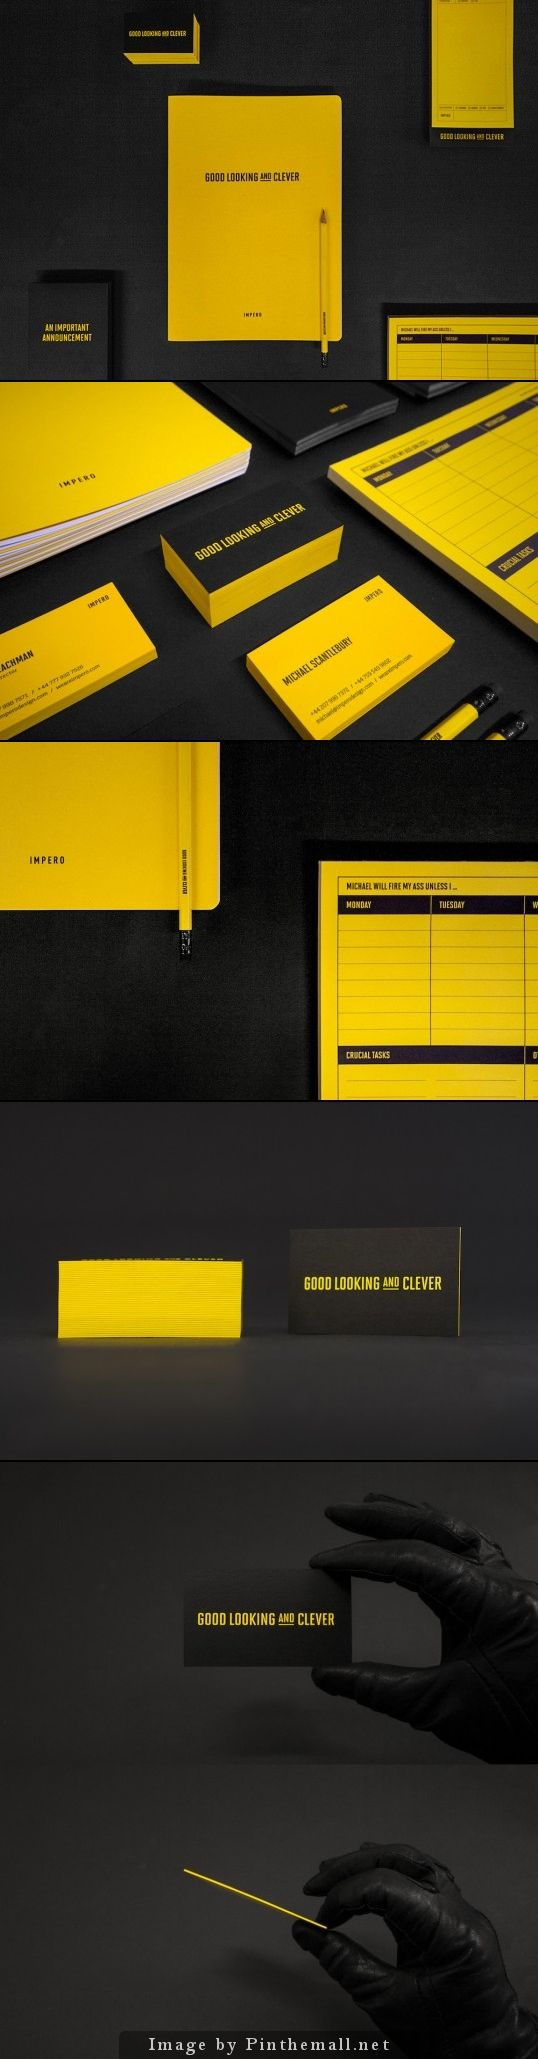 Corporate identity branding stationary minimal graphic logo design print business card letterhead bold colors contrast